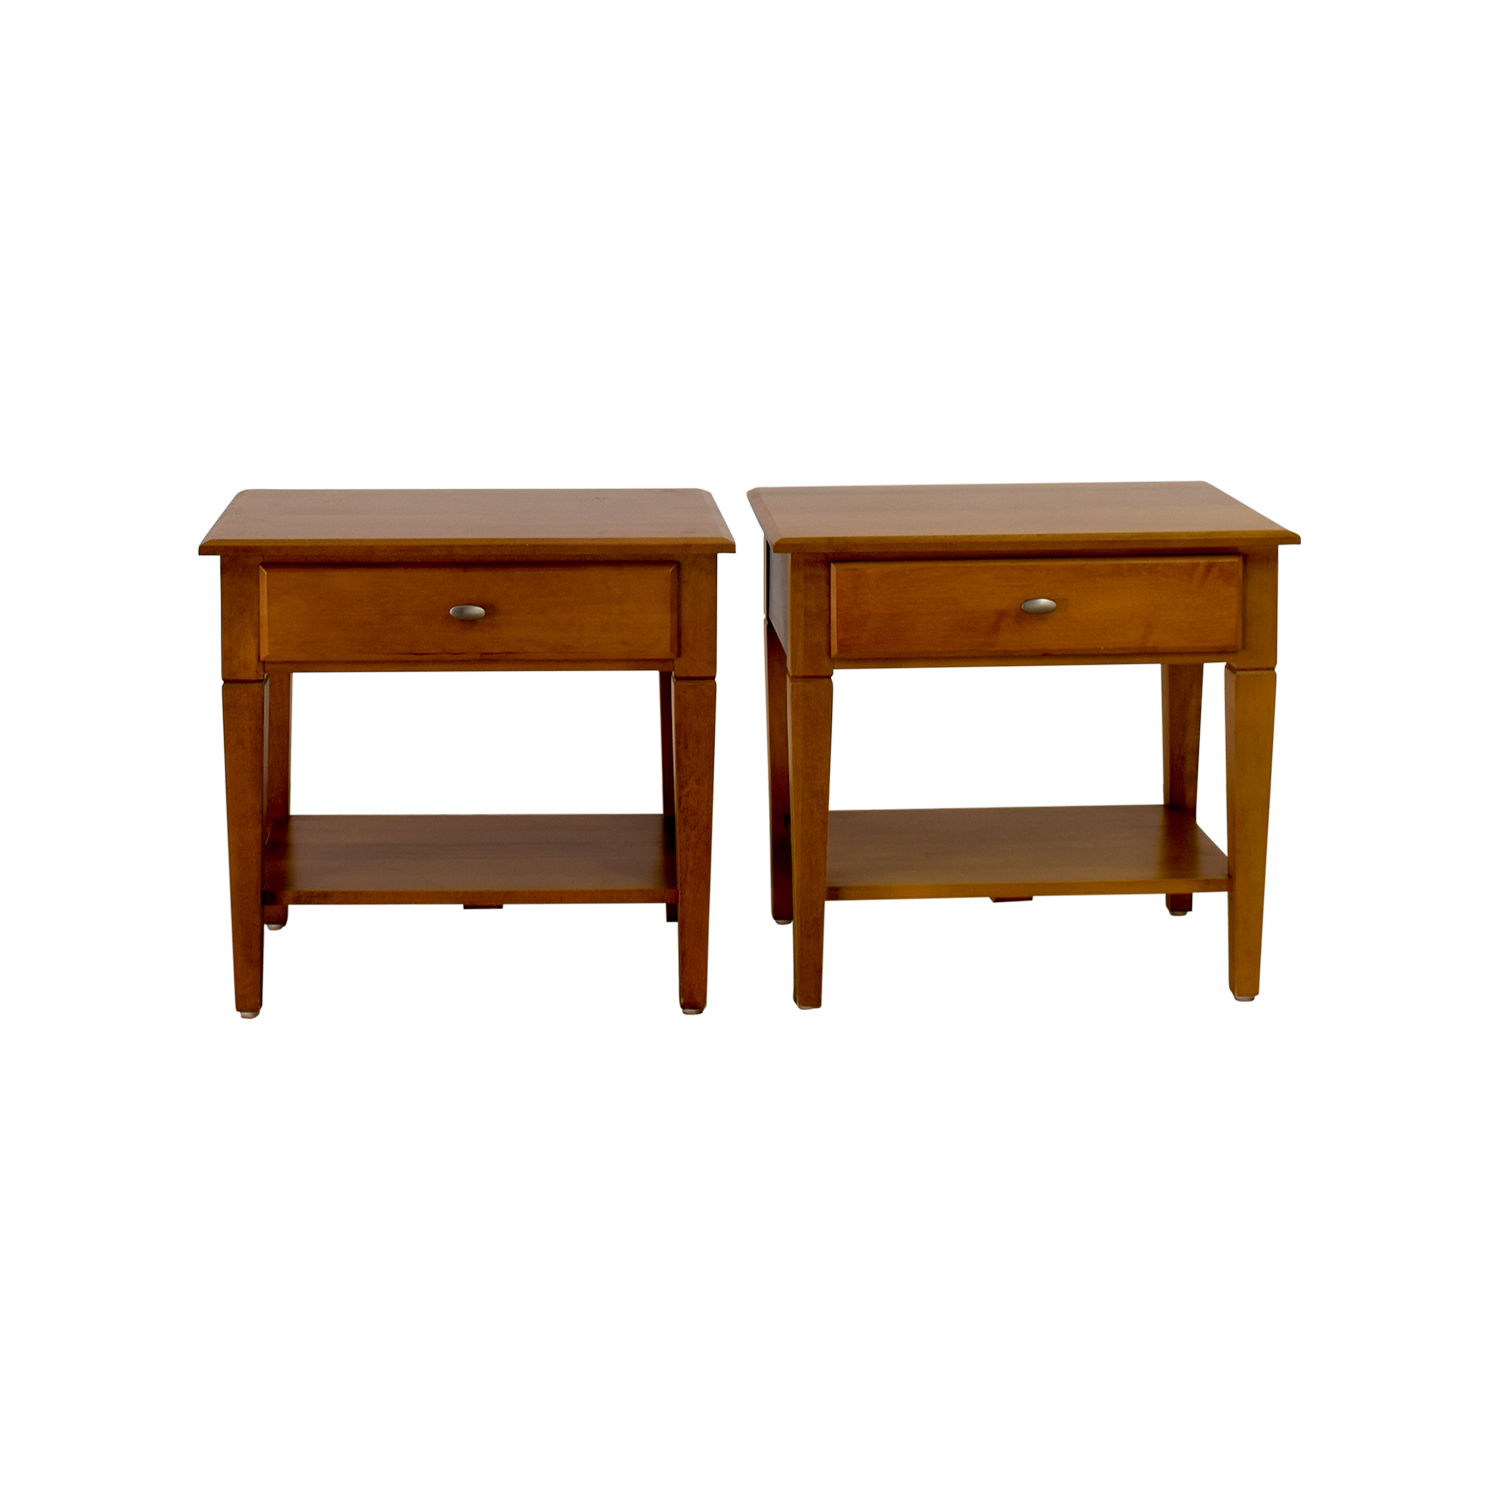 Ethan Allen Single Drawer End Tables sale